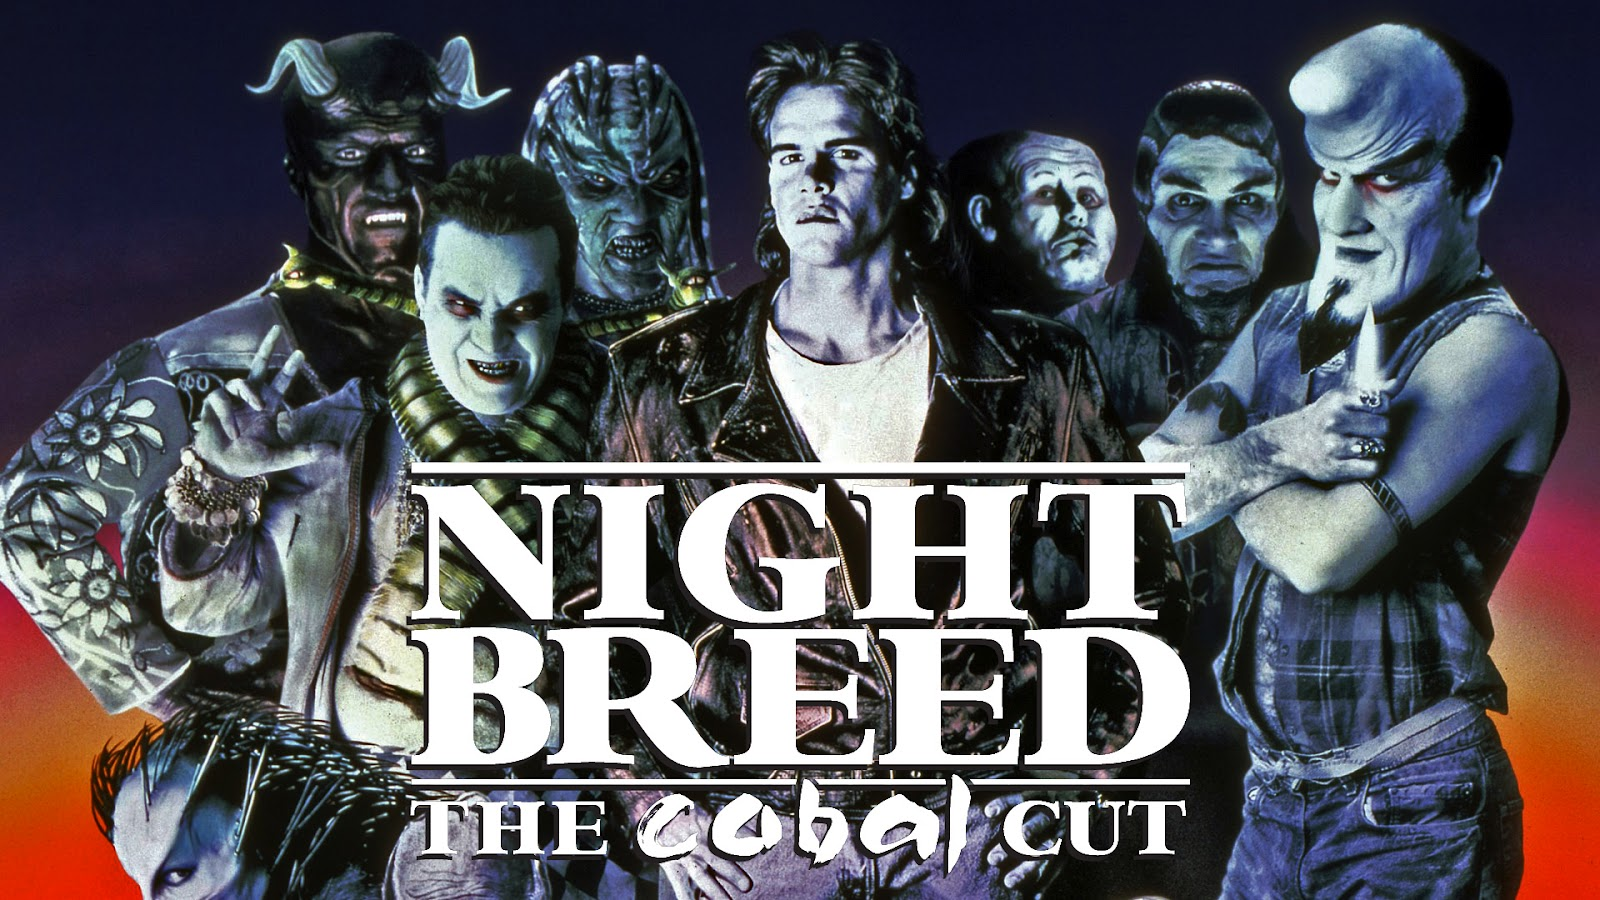 [Immagine: nightbreed+cabal+cut.jpg]